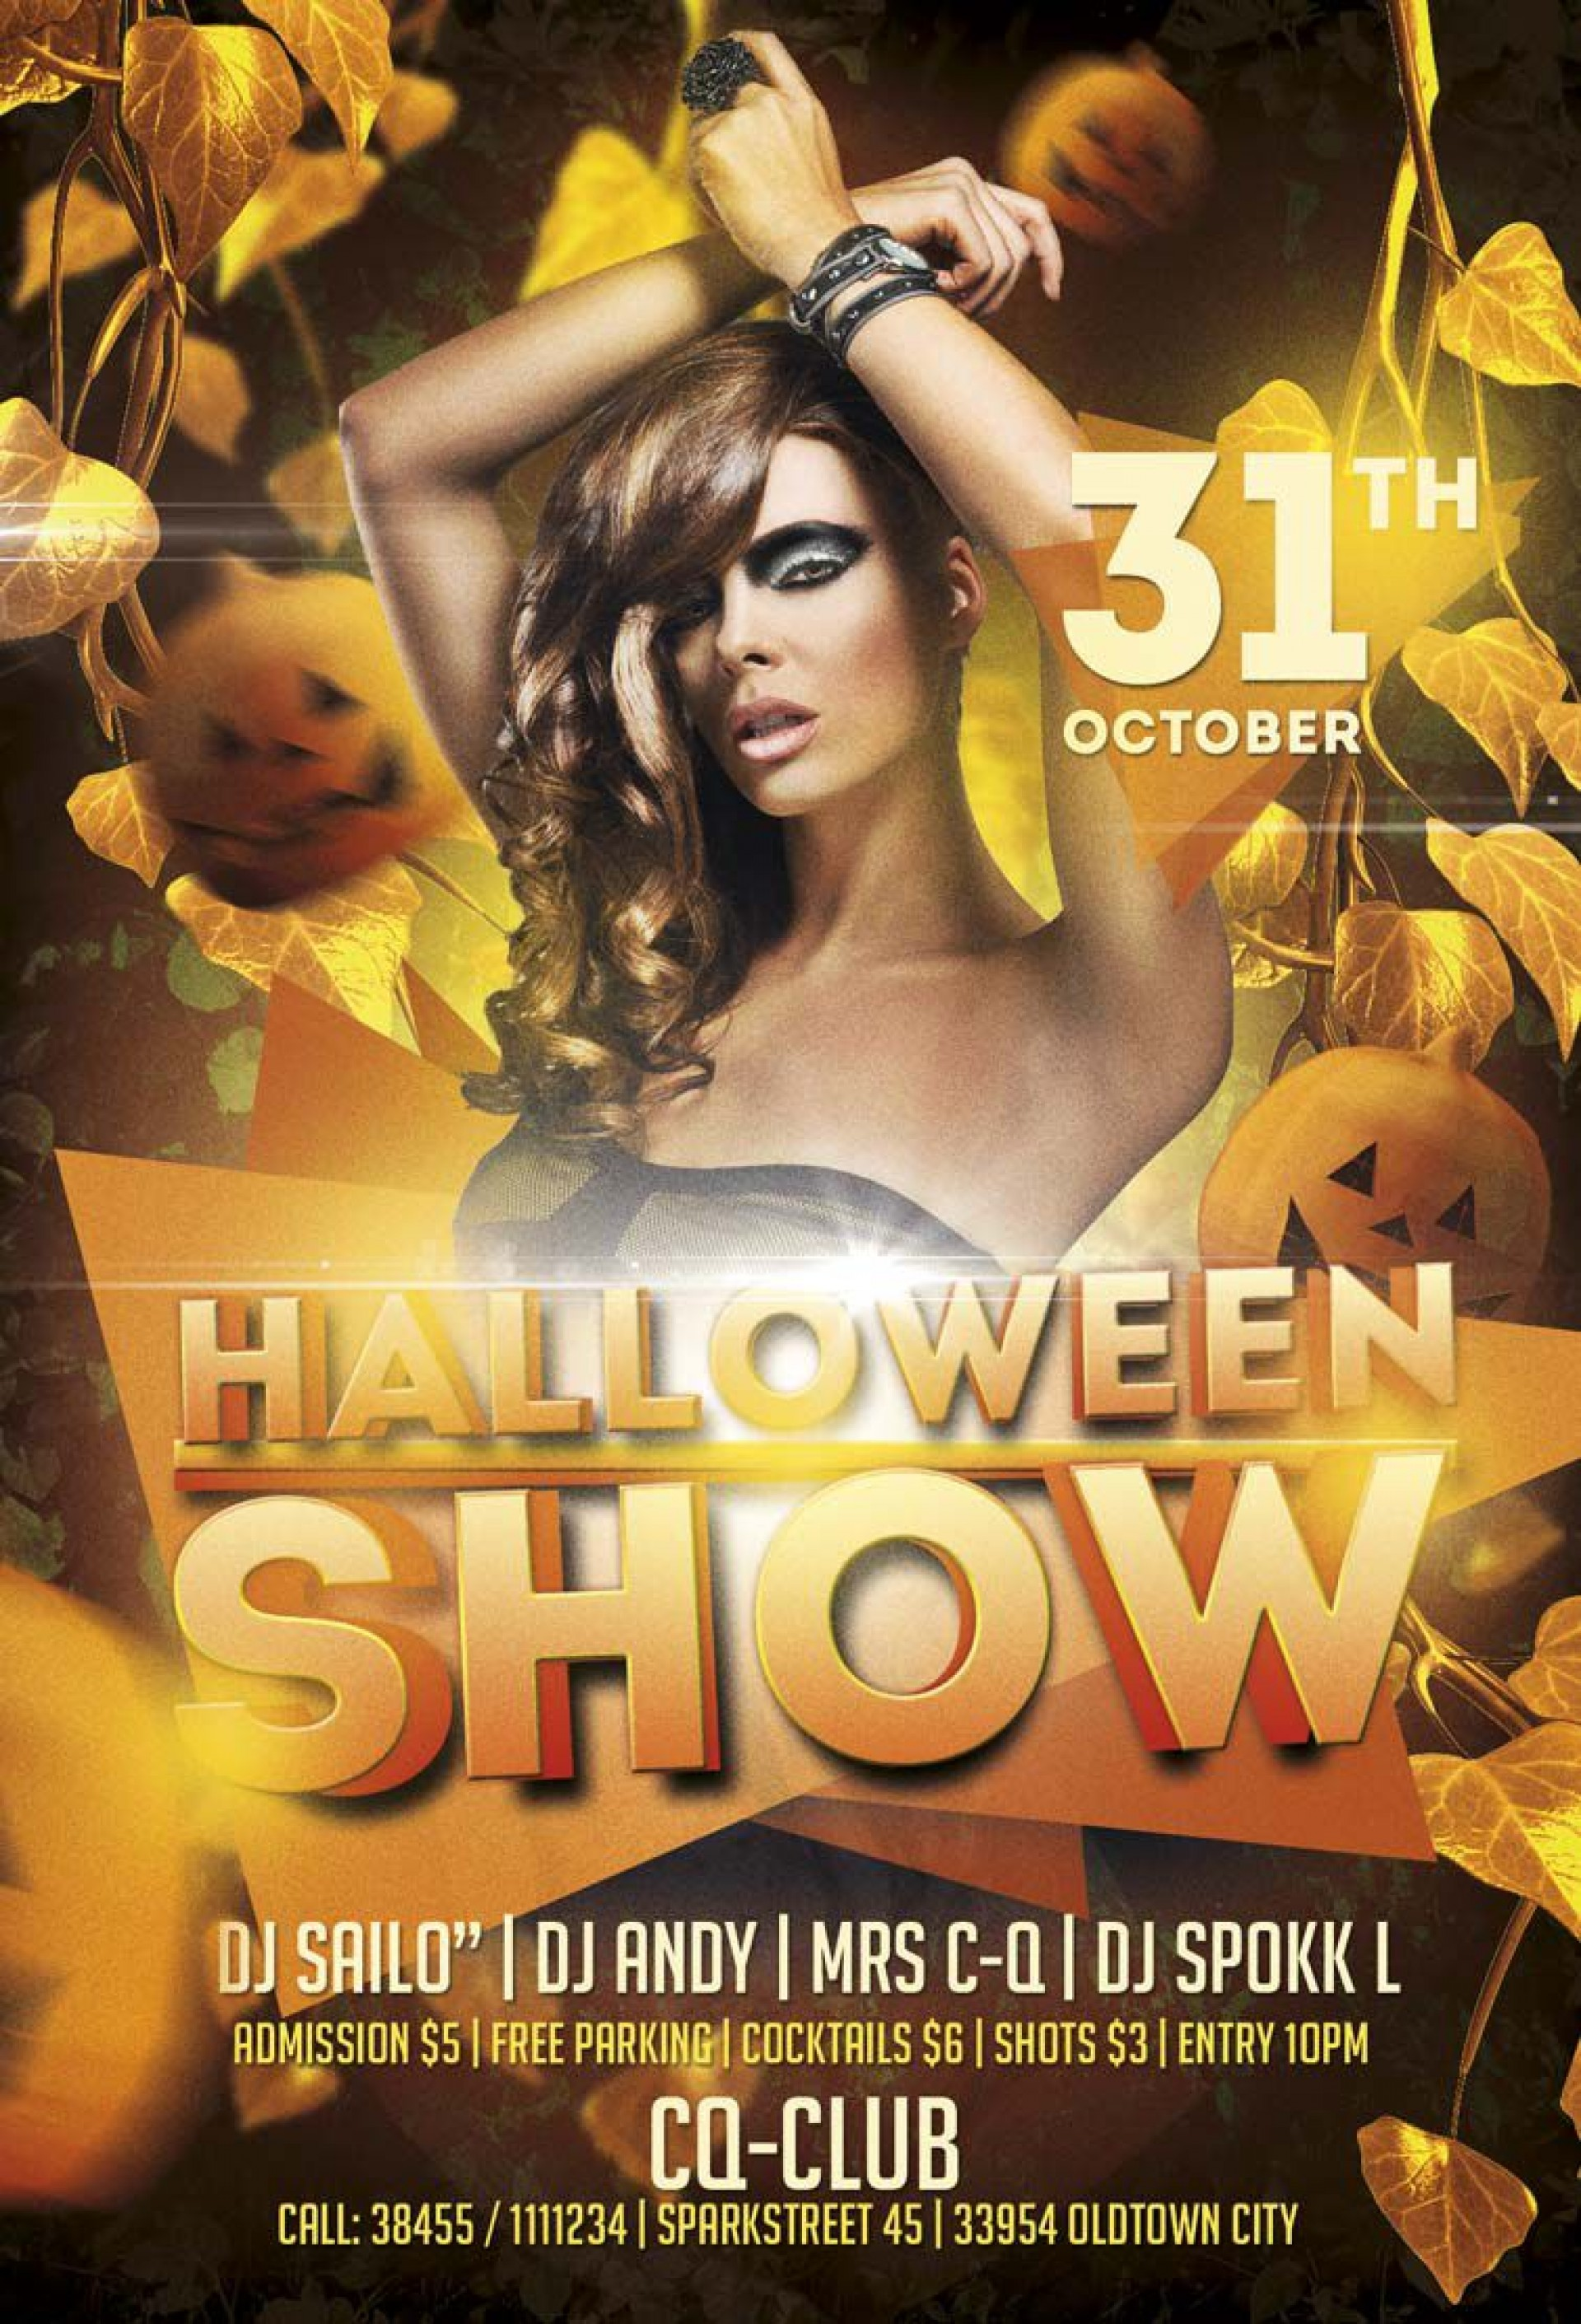 005 Striking Free Halloween Party Flyer Template Image  Templates1920